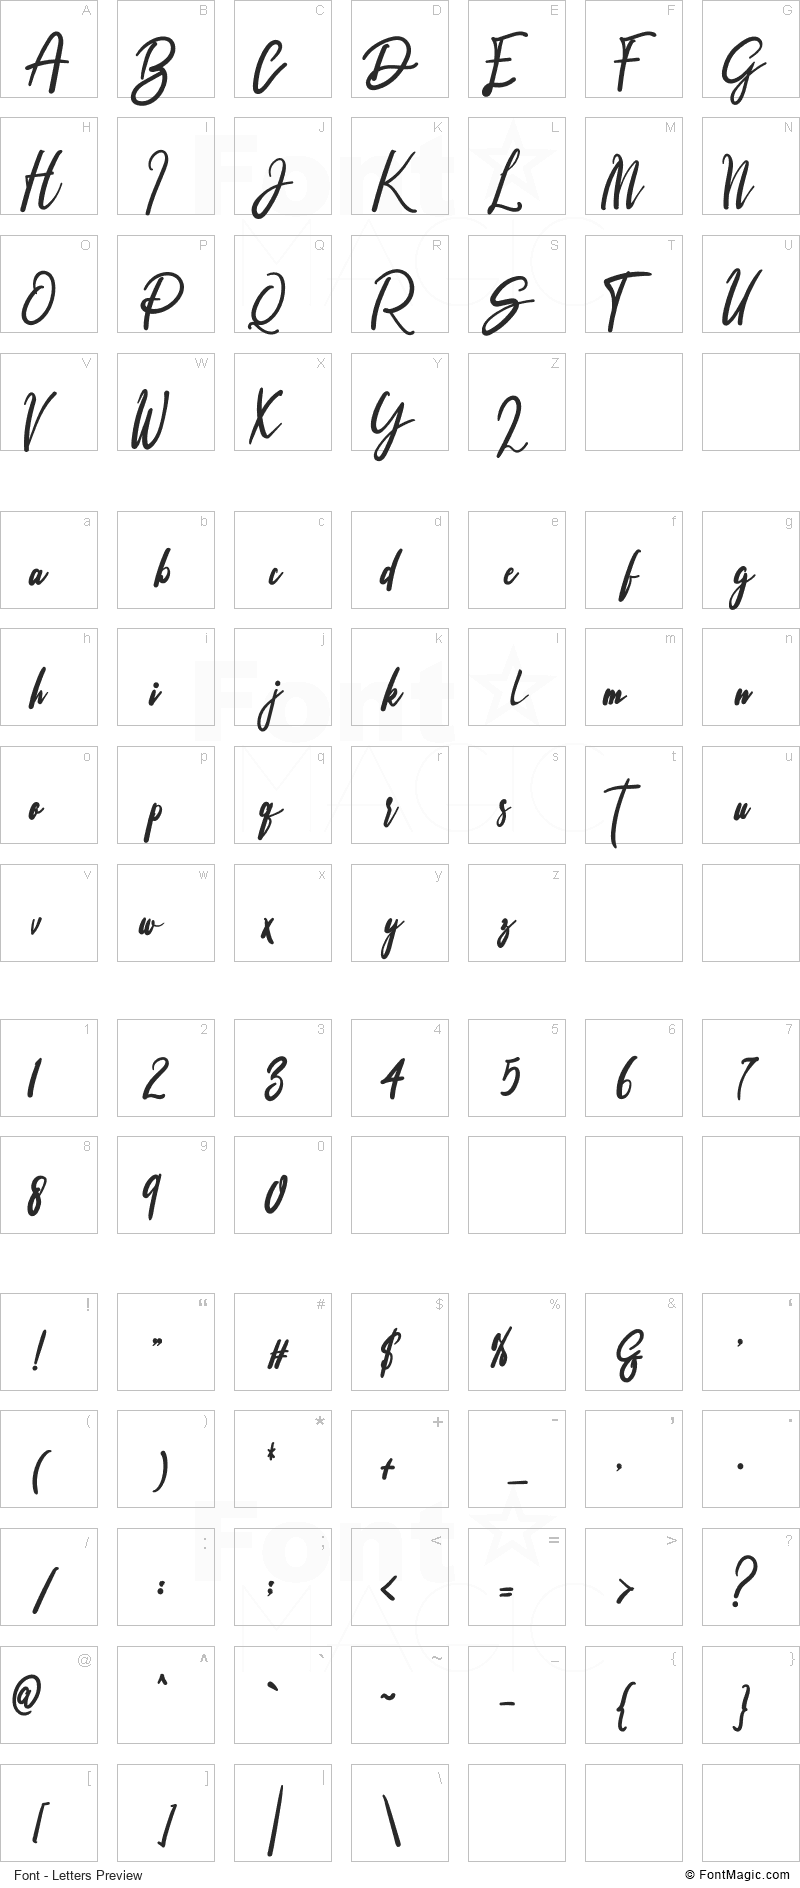 Signature Font - All Latters Preview Chart